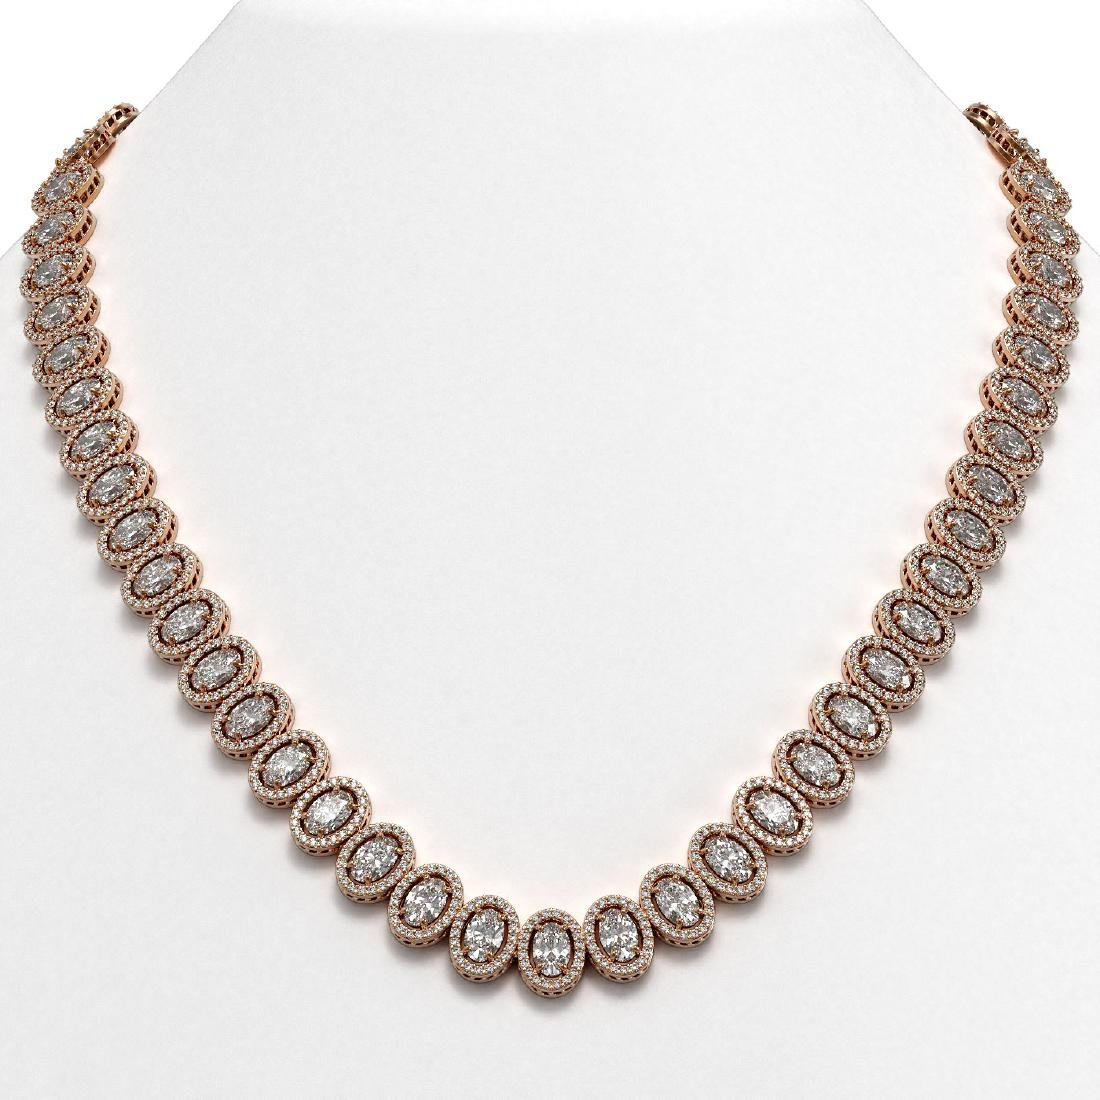 34.72 CTW Oval Diamond Designer Necklace 18K Rose Gold